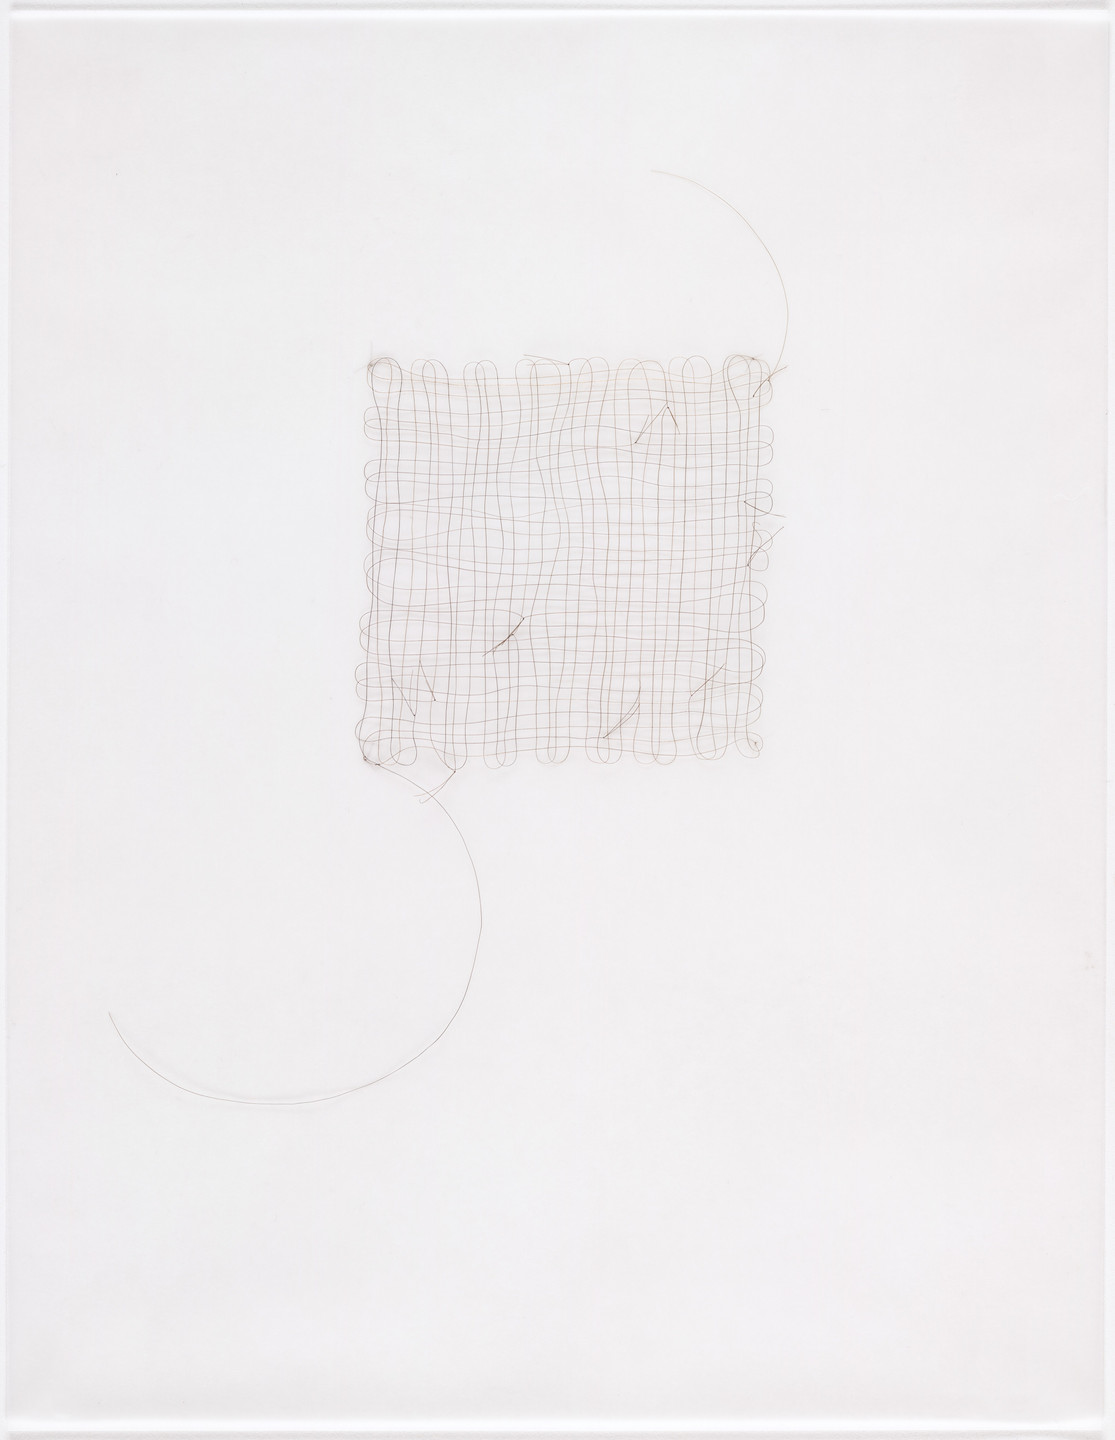 Mona Hatoum. Untitled (hair grid with knots 3). (2001)